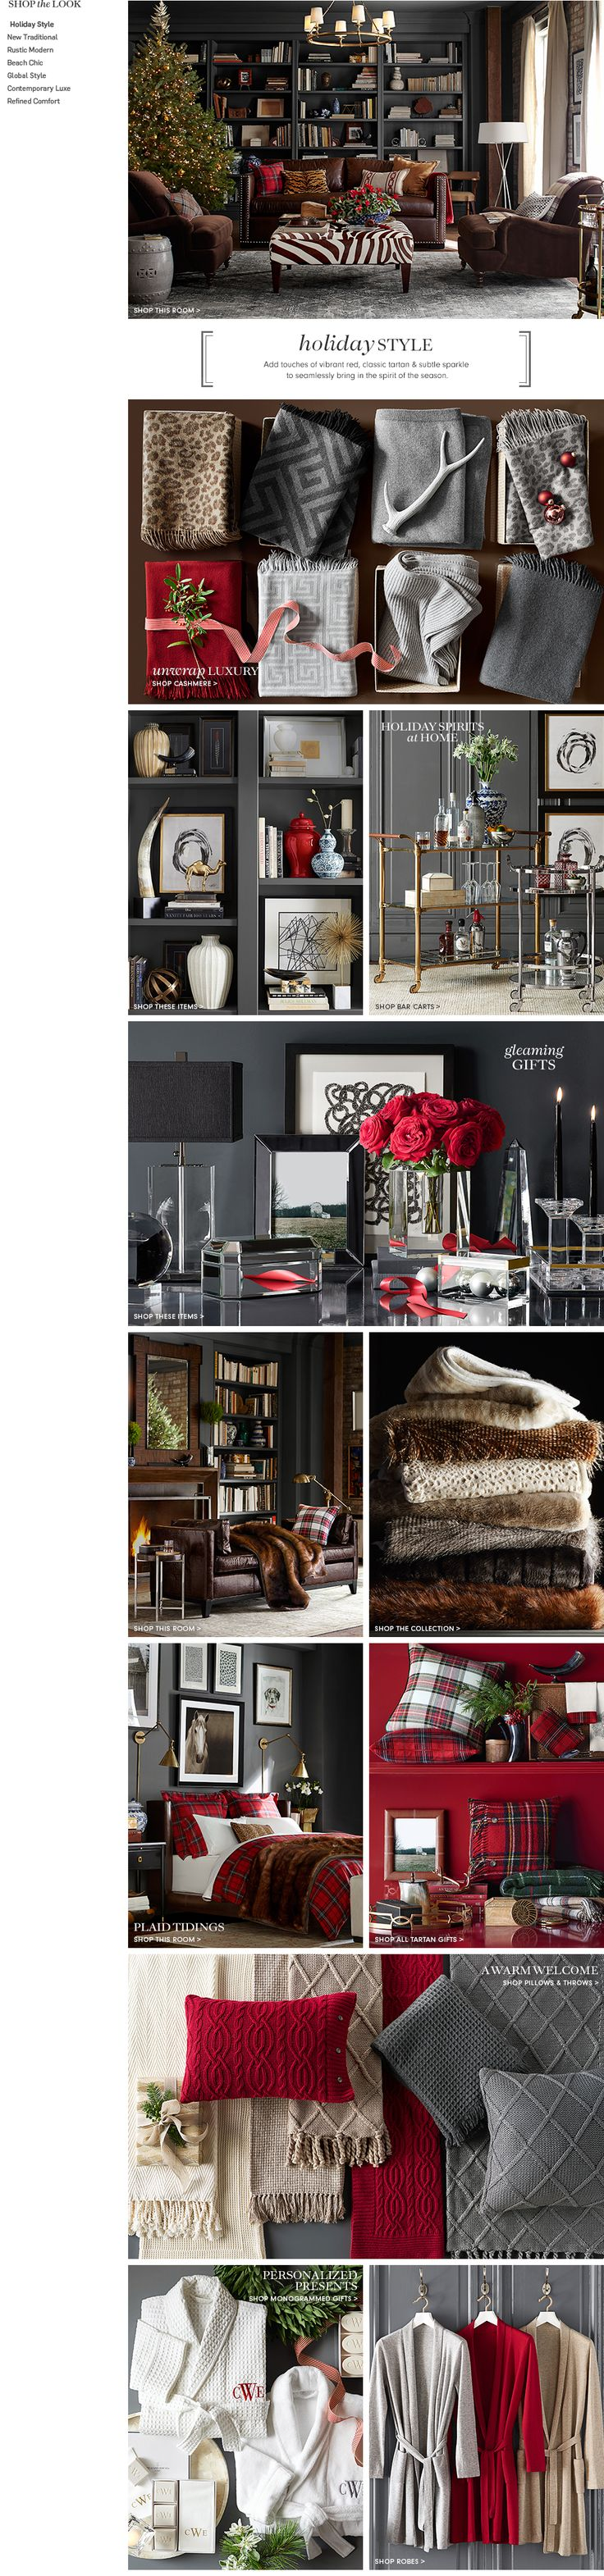 72 best Williams Sonoma images on Pinterest